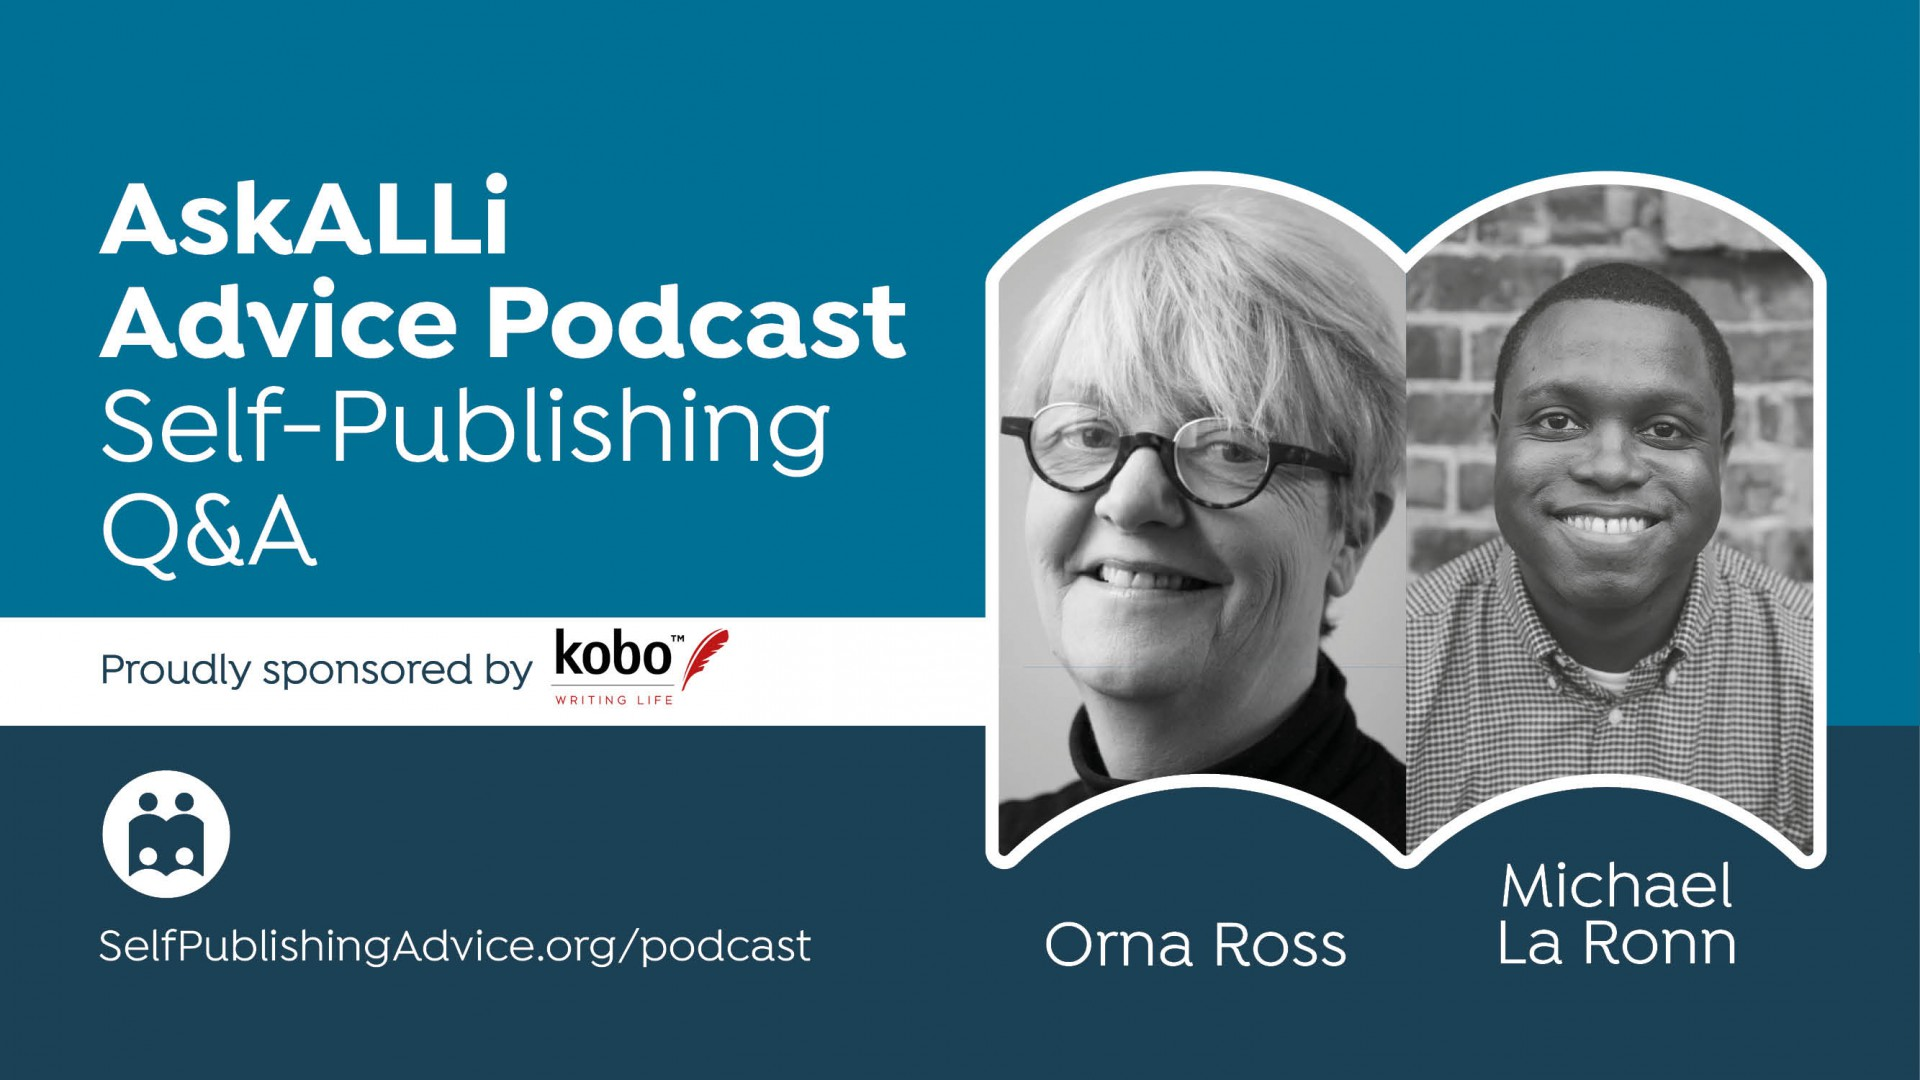 PODCAST: What's The Best Way To Keep In Touch With My Readers?